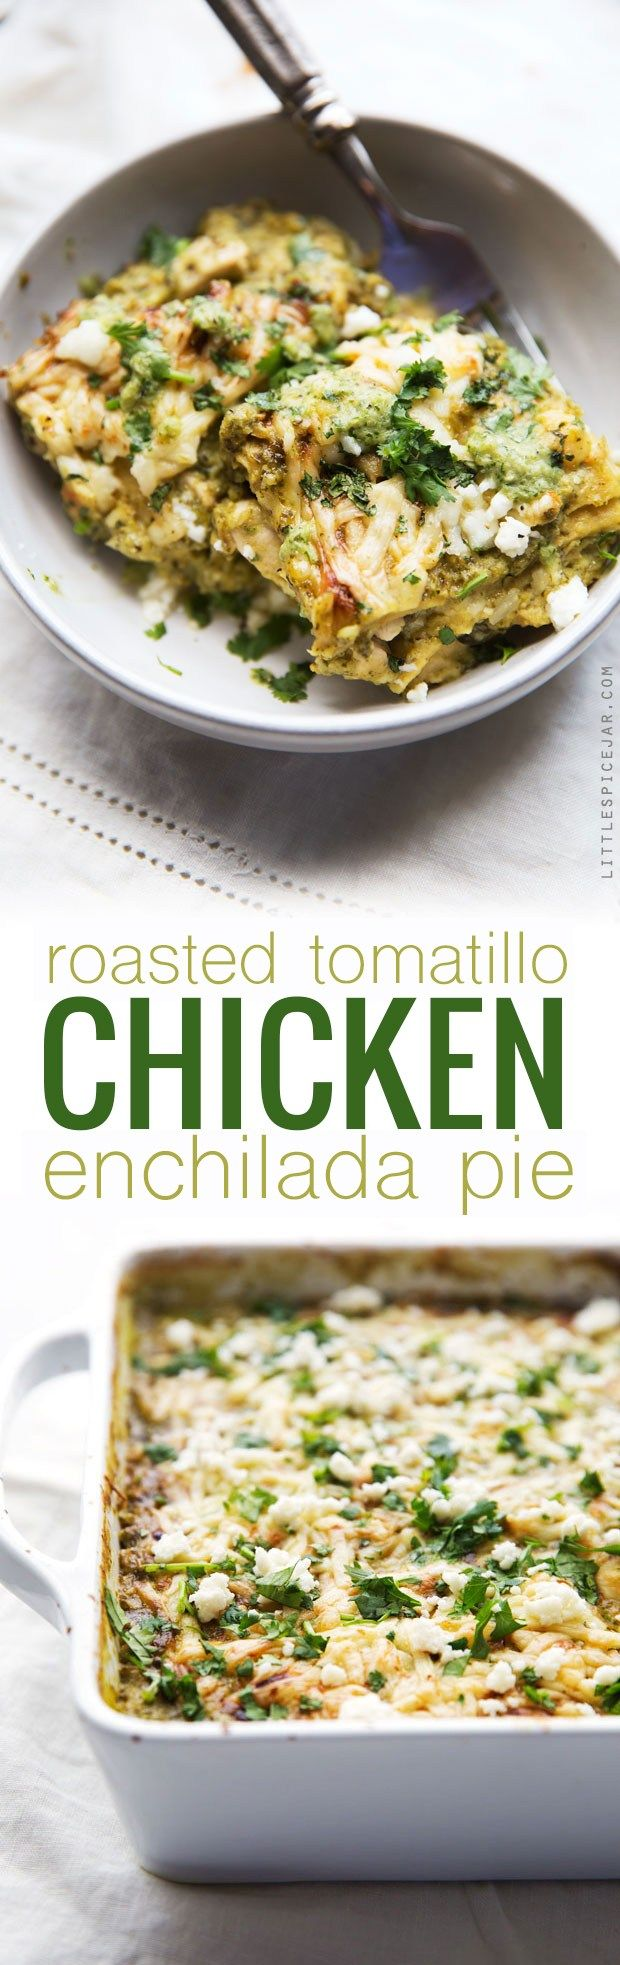 Roasted Tomatillo Rooster Enchilada Pie